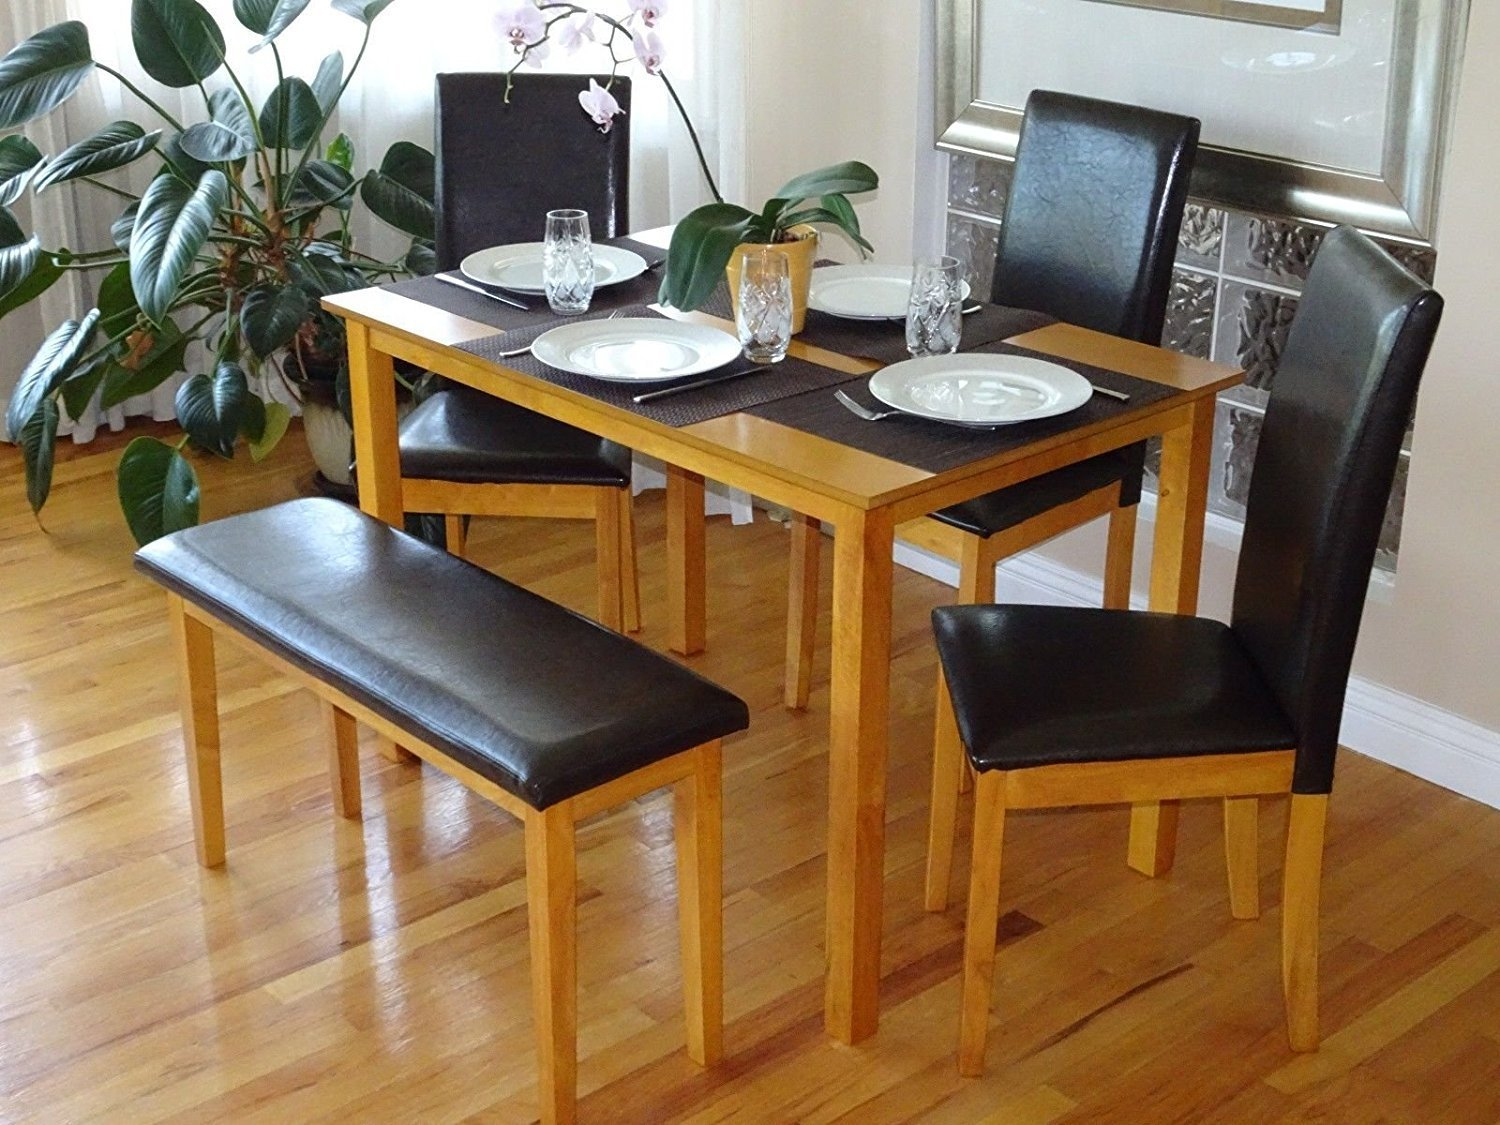 Rattan Wicker Furniture Dining Kitchen Solid Wooden Bench Stained Padded Seat Classic Design in Maple Finish by Rattan Wicker Furniture (Image #5)